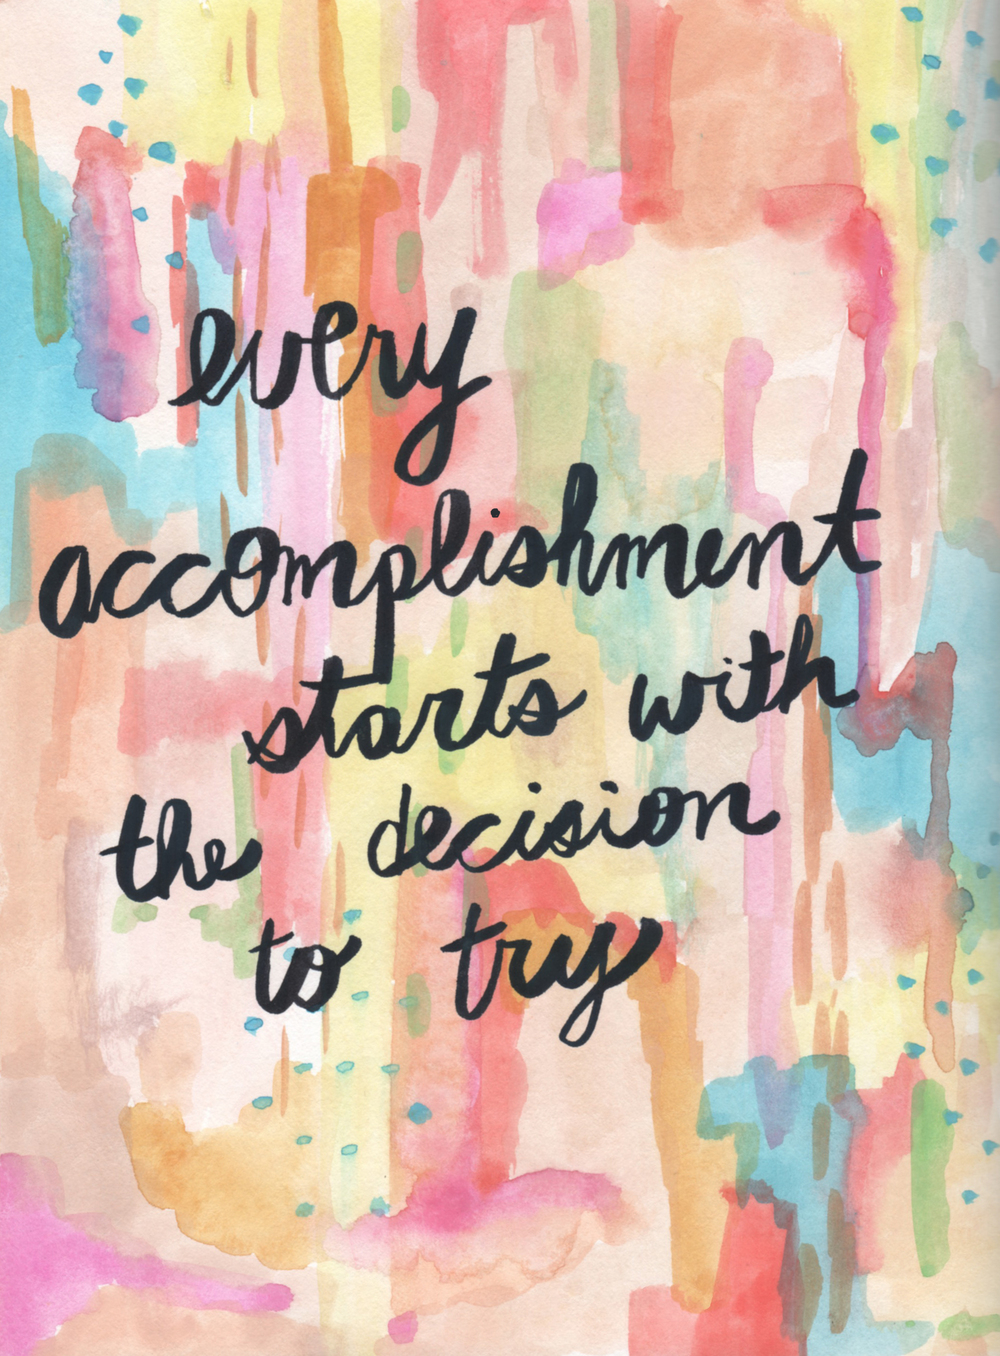 every accomplishment nicole stevenson studio.jpg